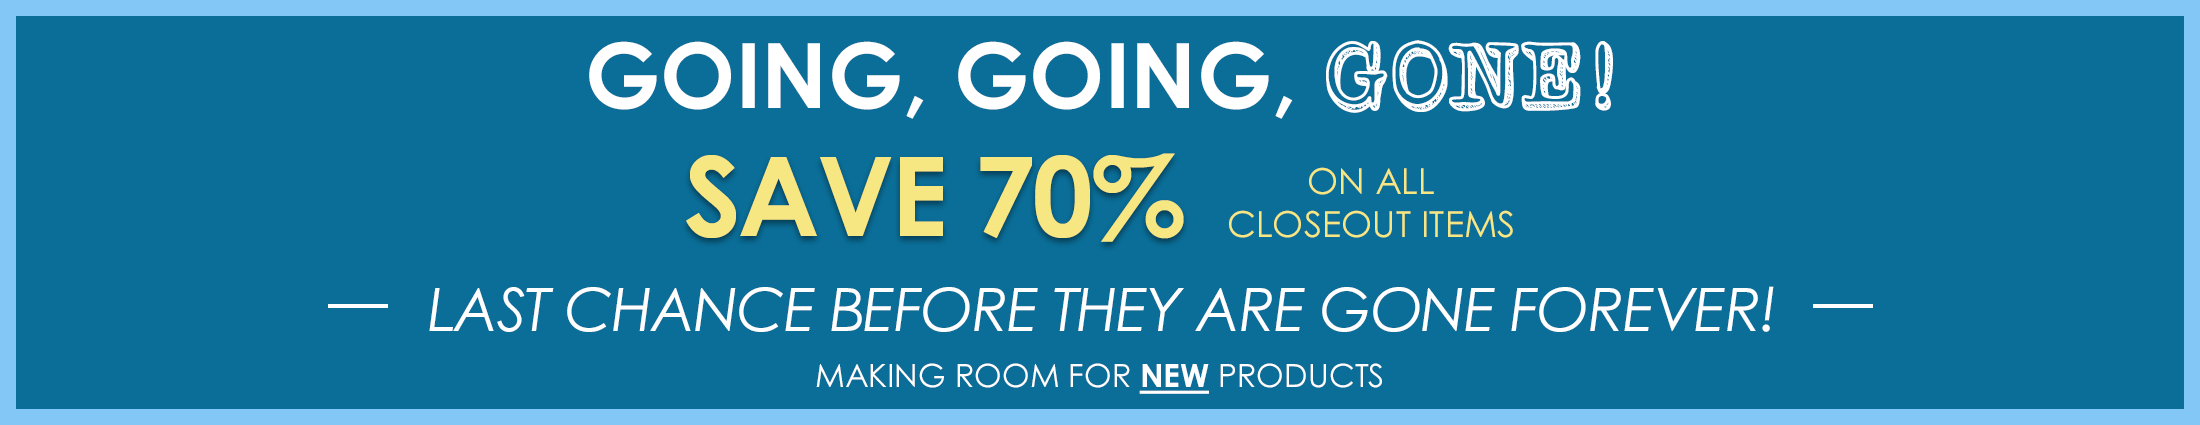 Last Chance Closeout Sale 70% off